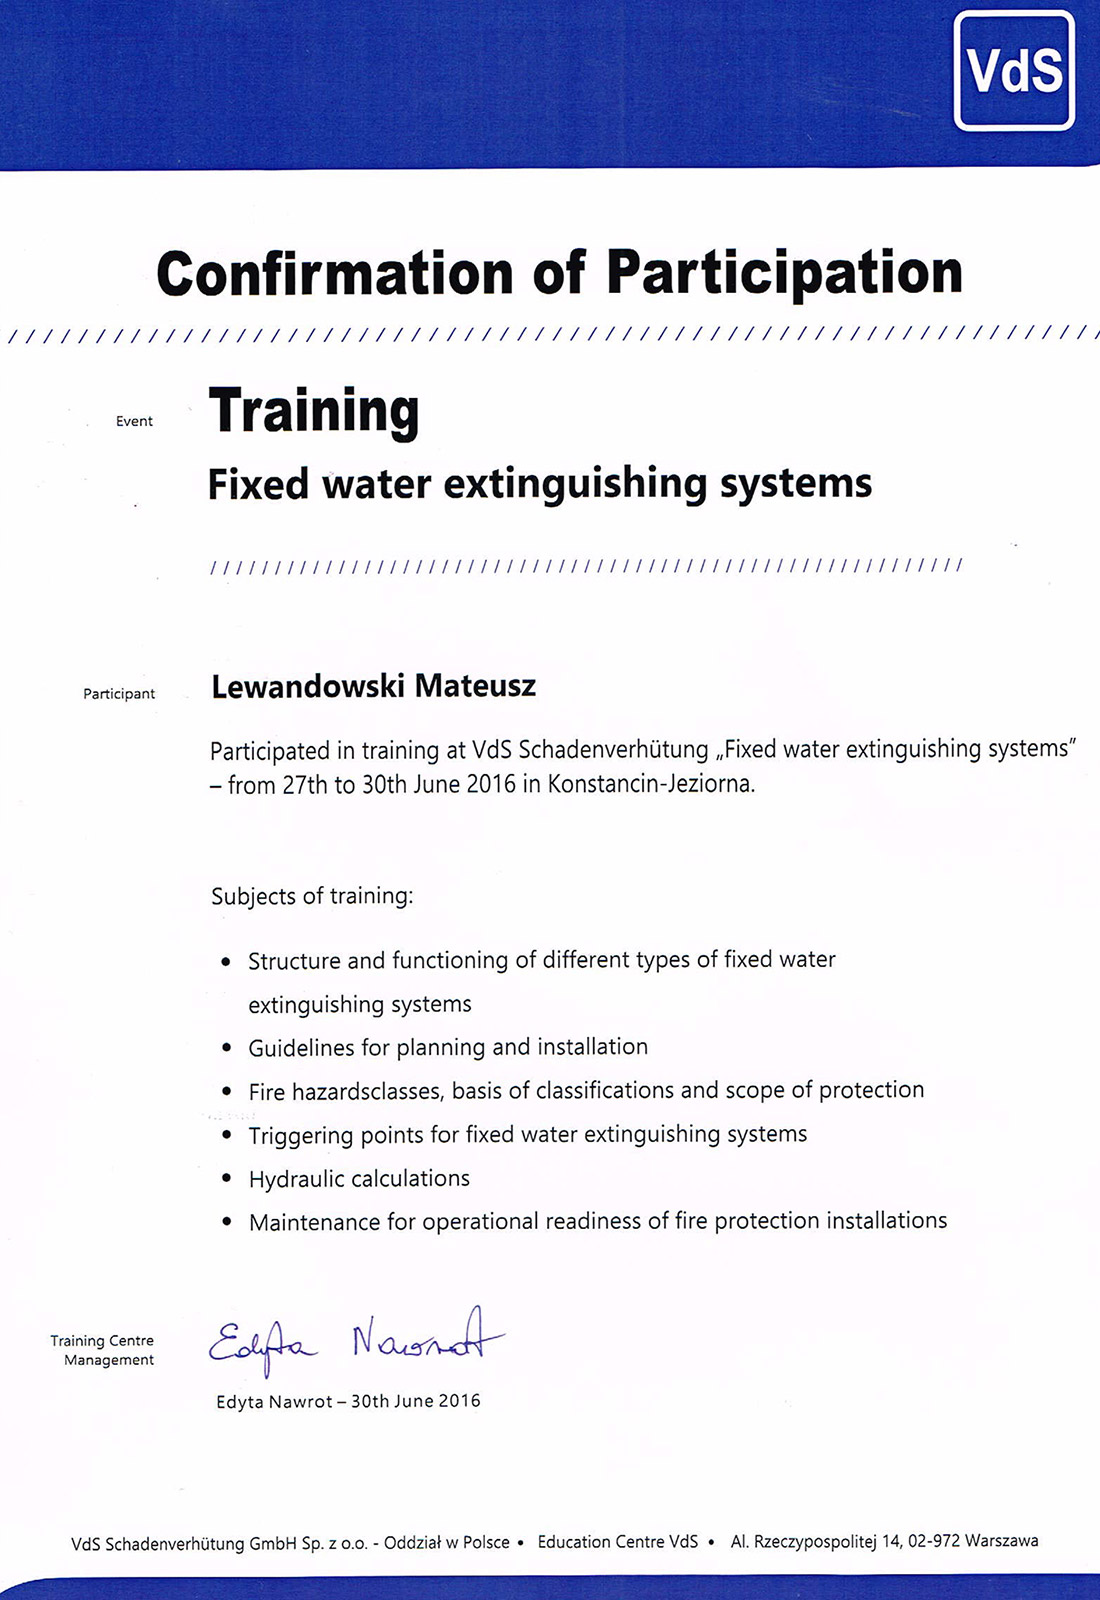 confirmation_fixed_water_ledandowski_mateusz